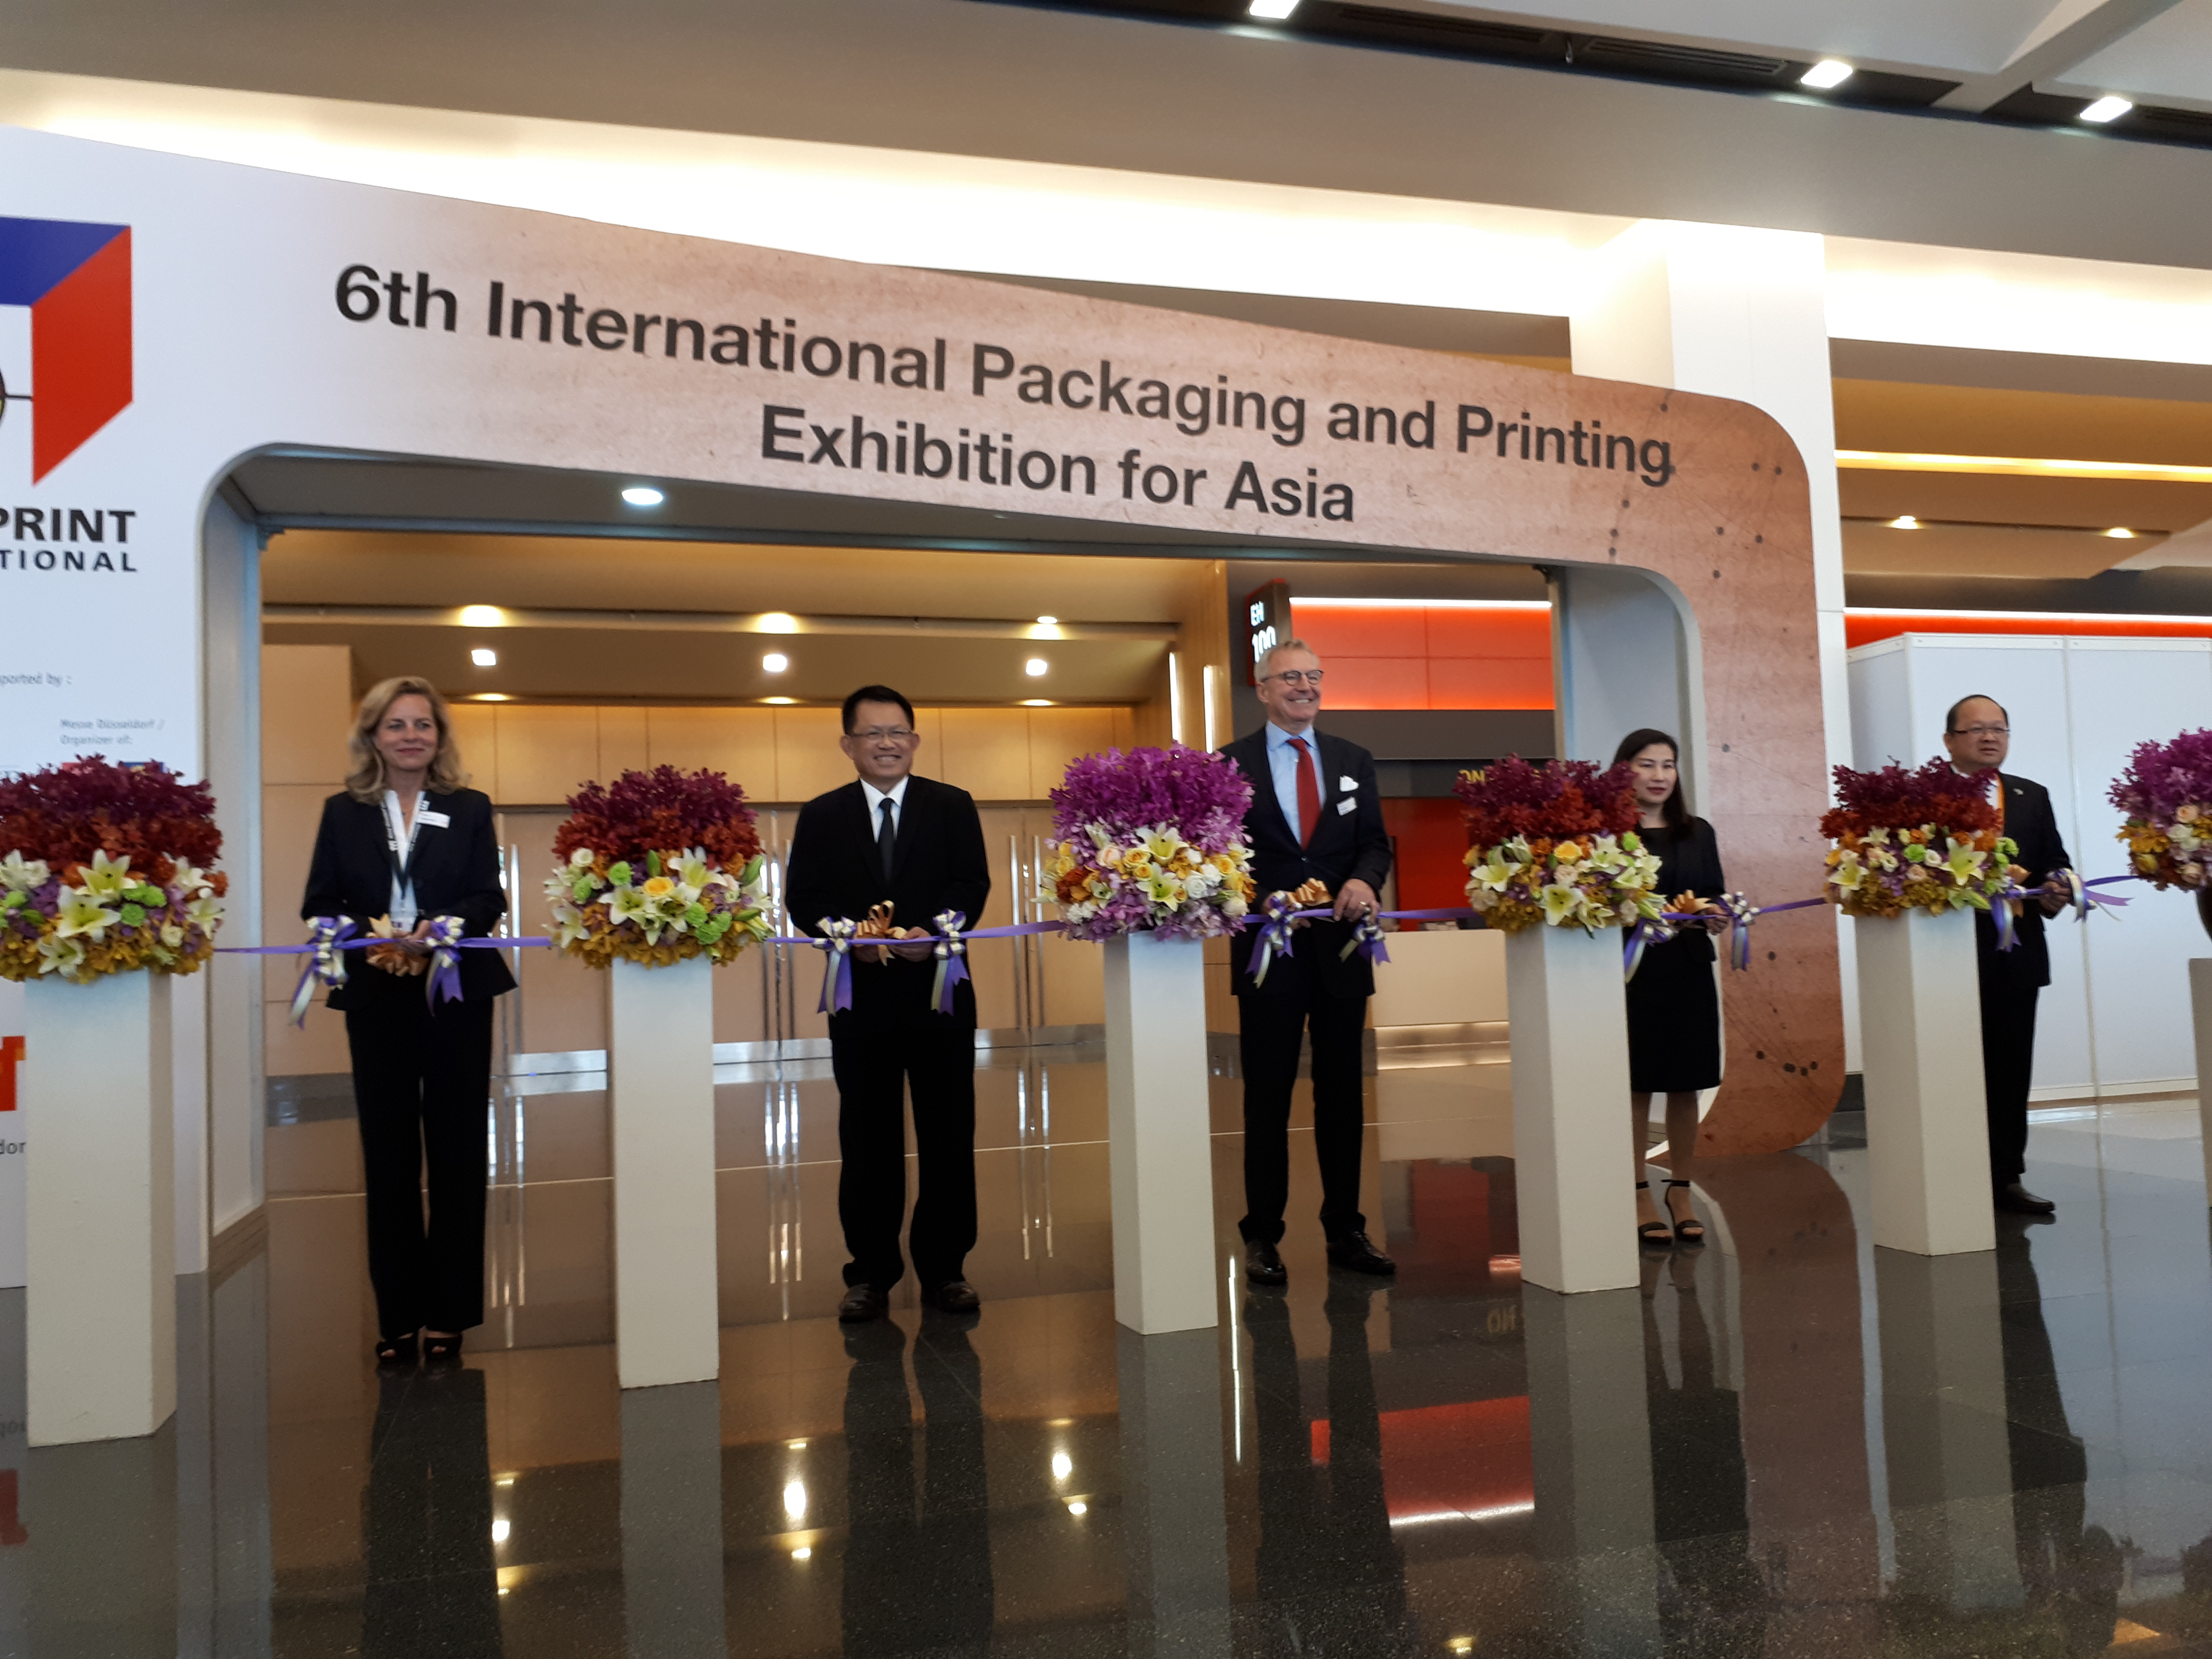 Pack Print International promotes cross-trade partnerships in Southeast Asia